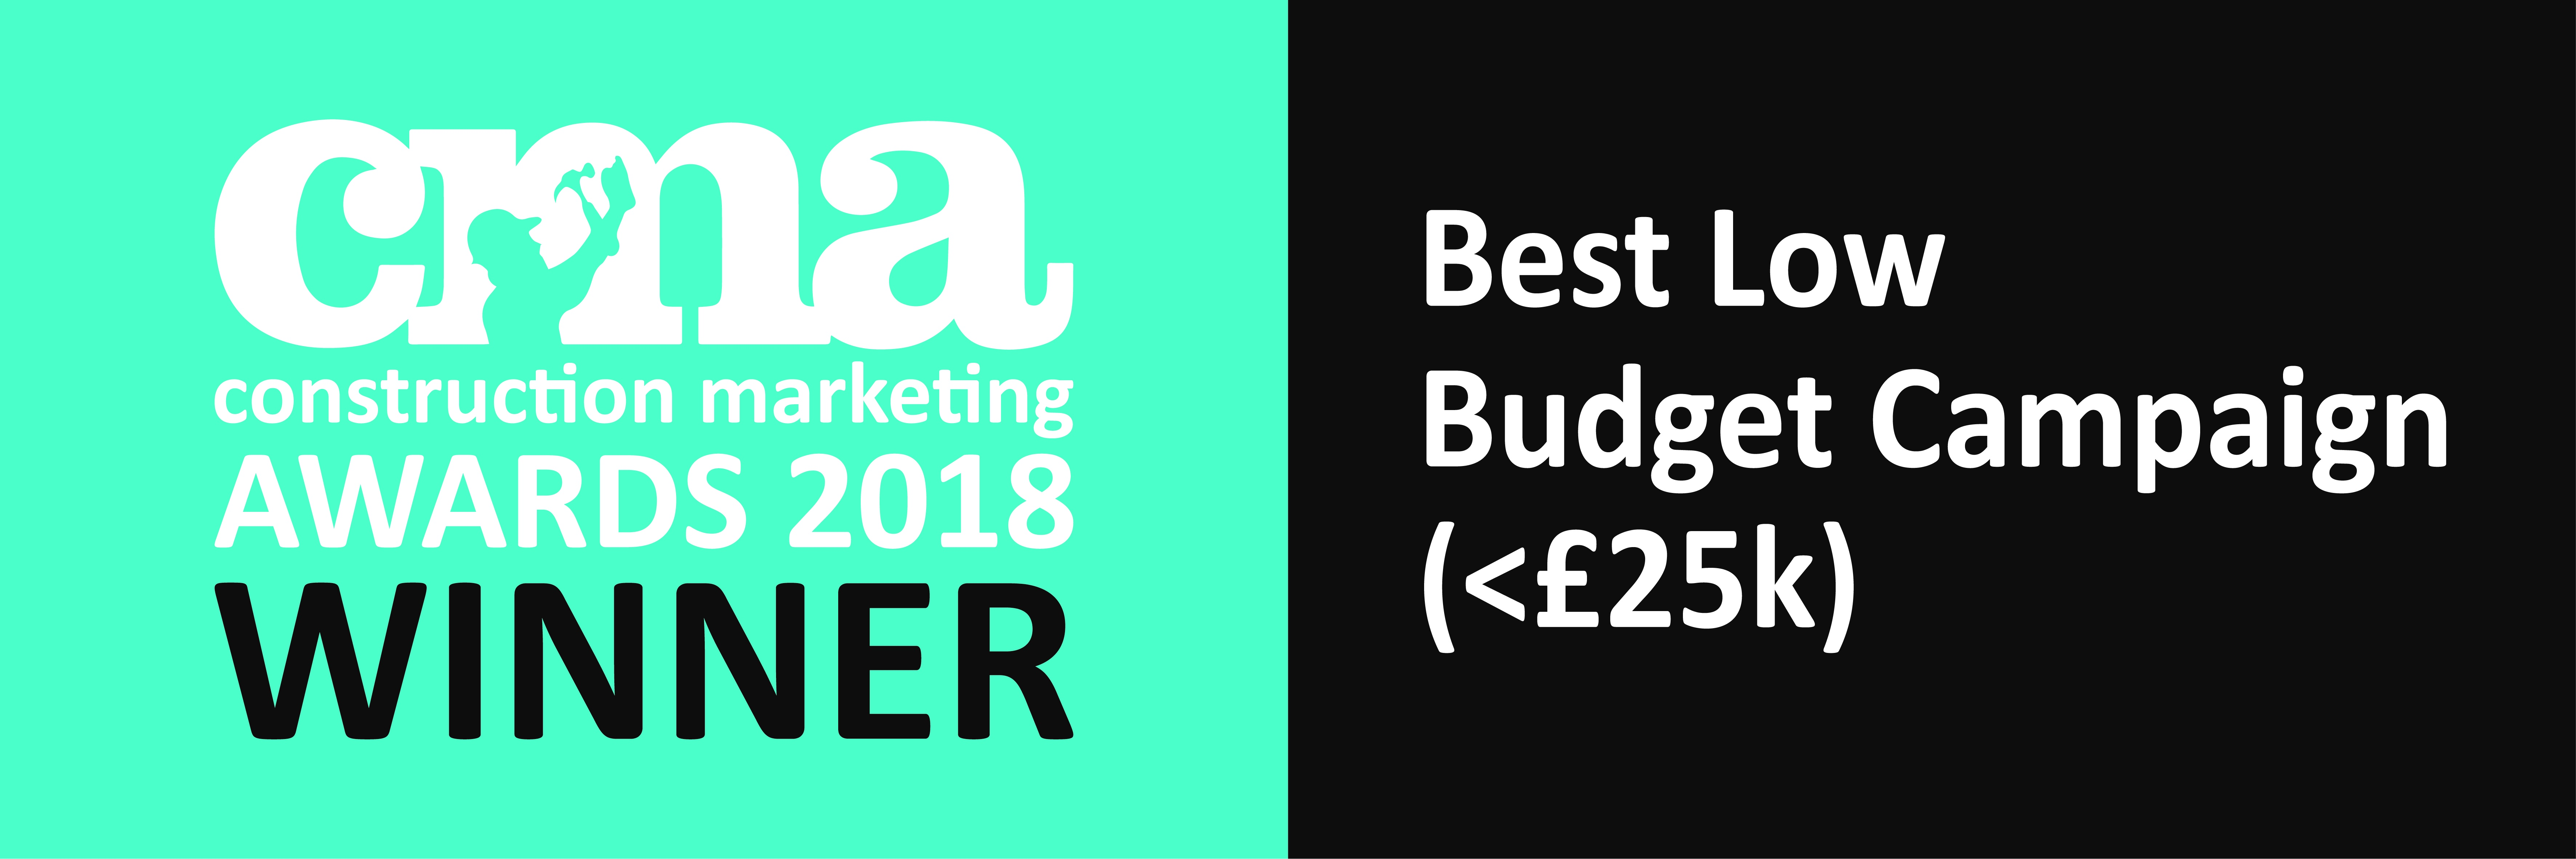 CMA-2018-Winner-Best-Low-Budget-Campaign